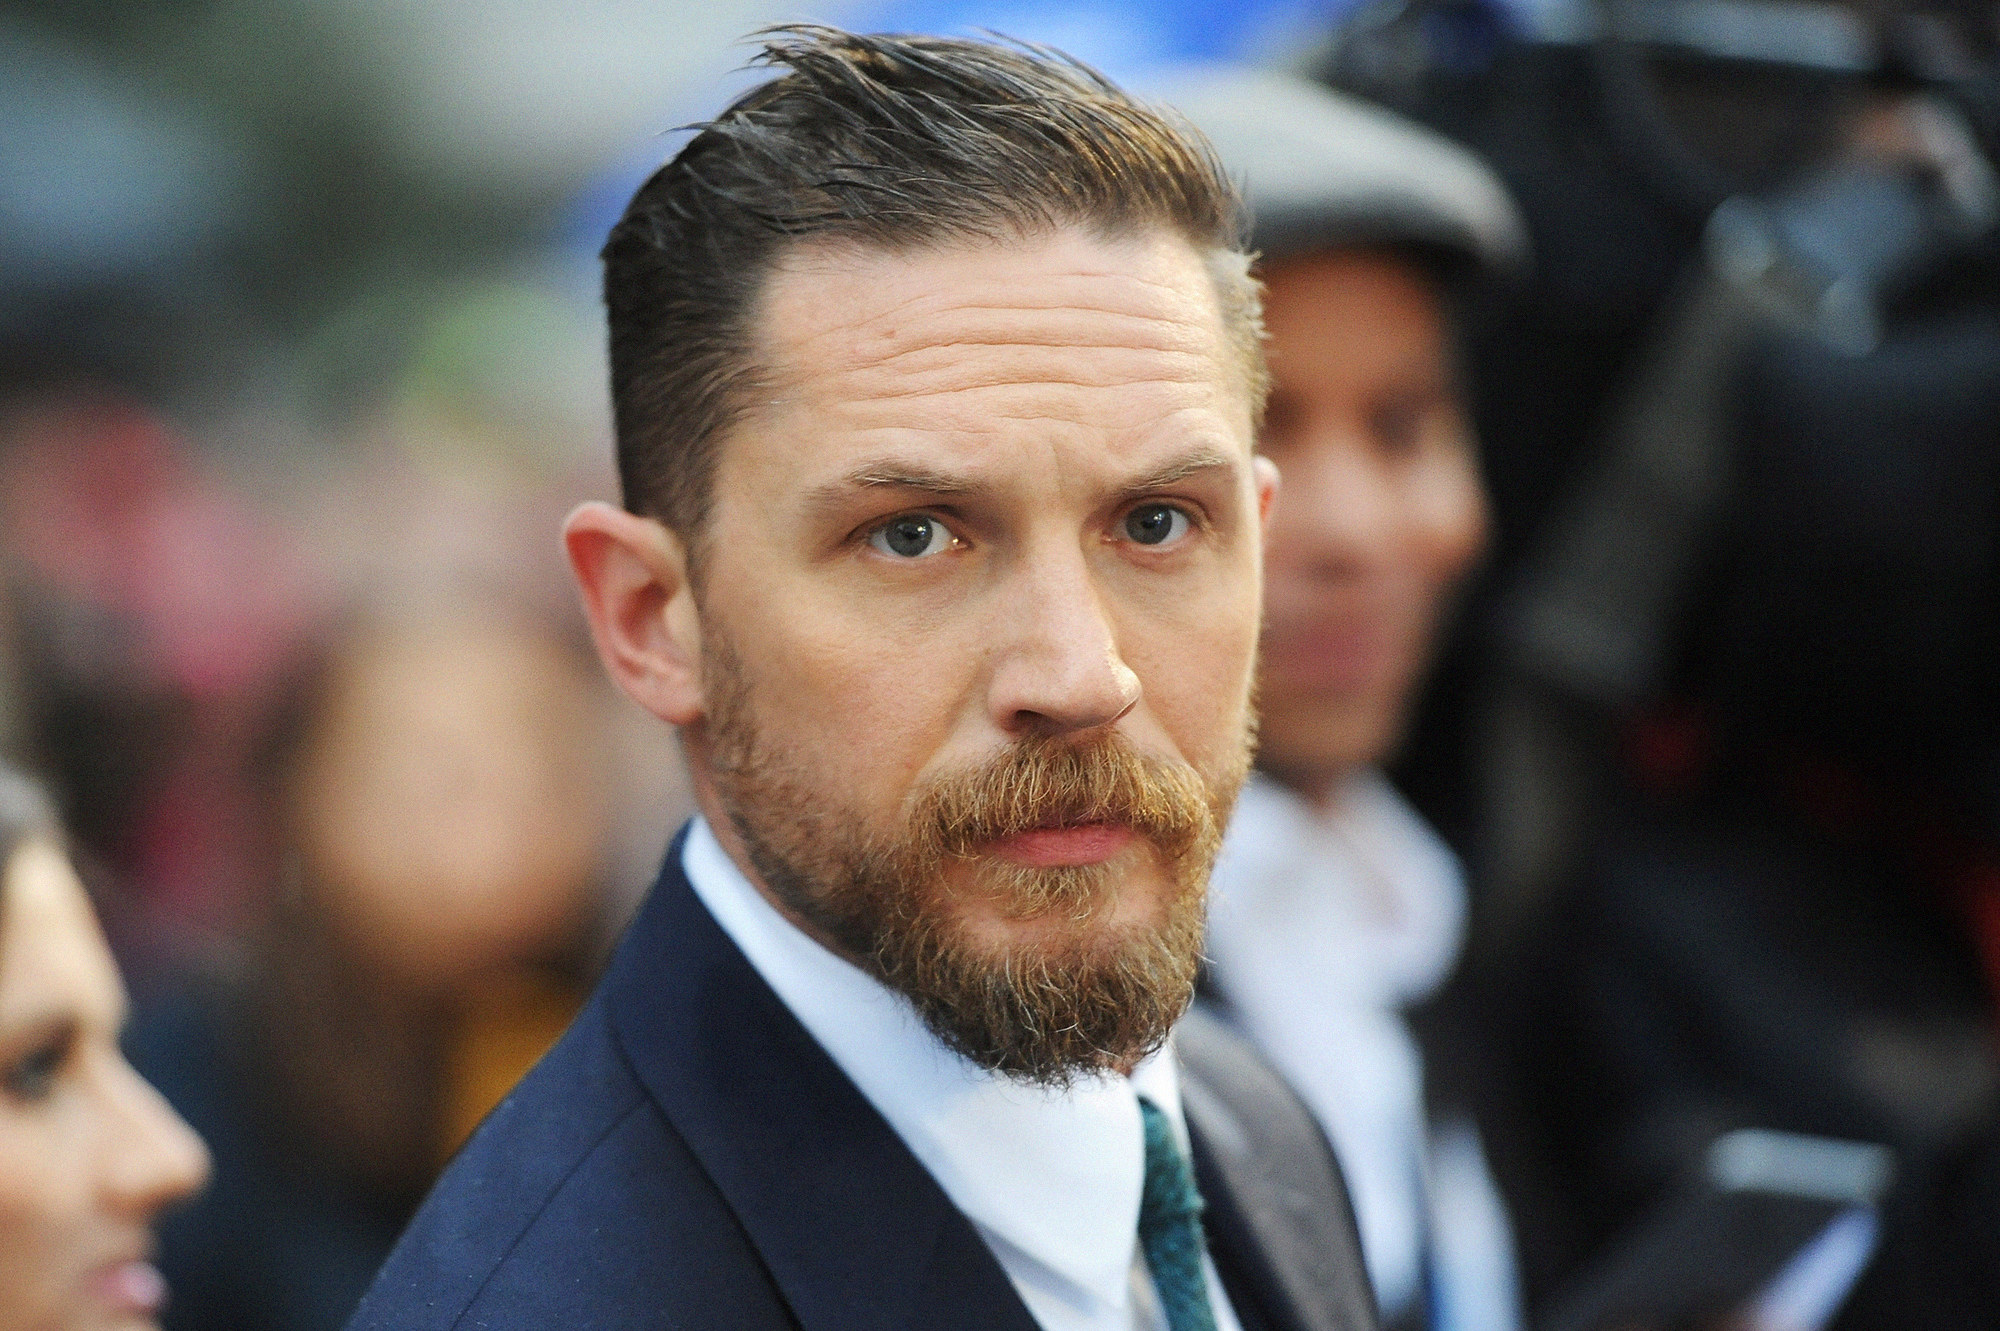 Tom Hardy Hd Wallpapers For Desktop Download